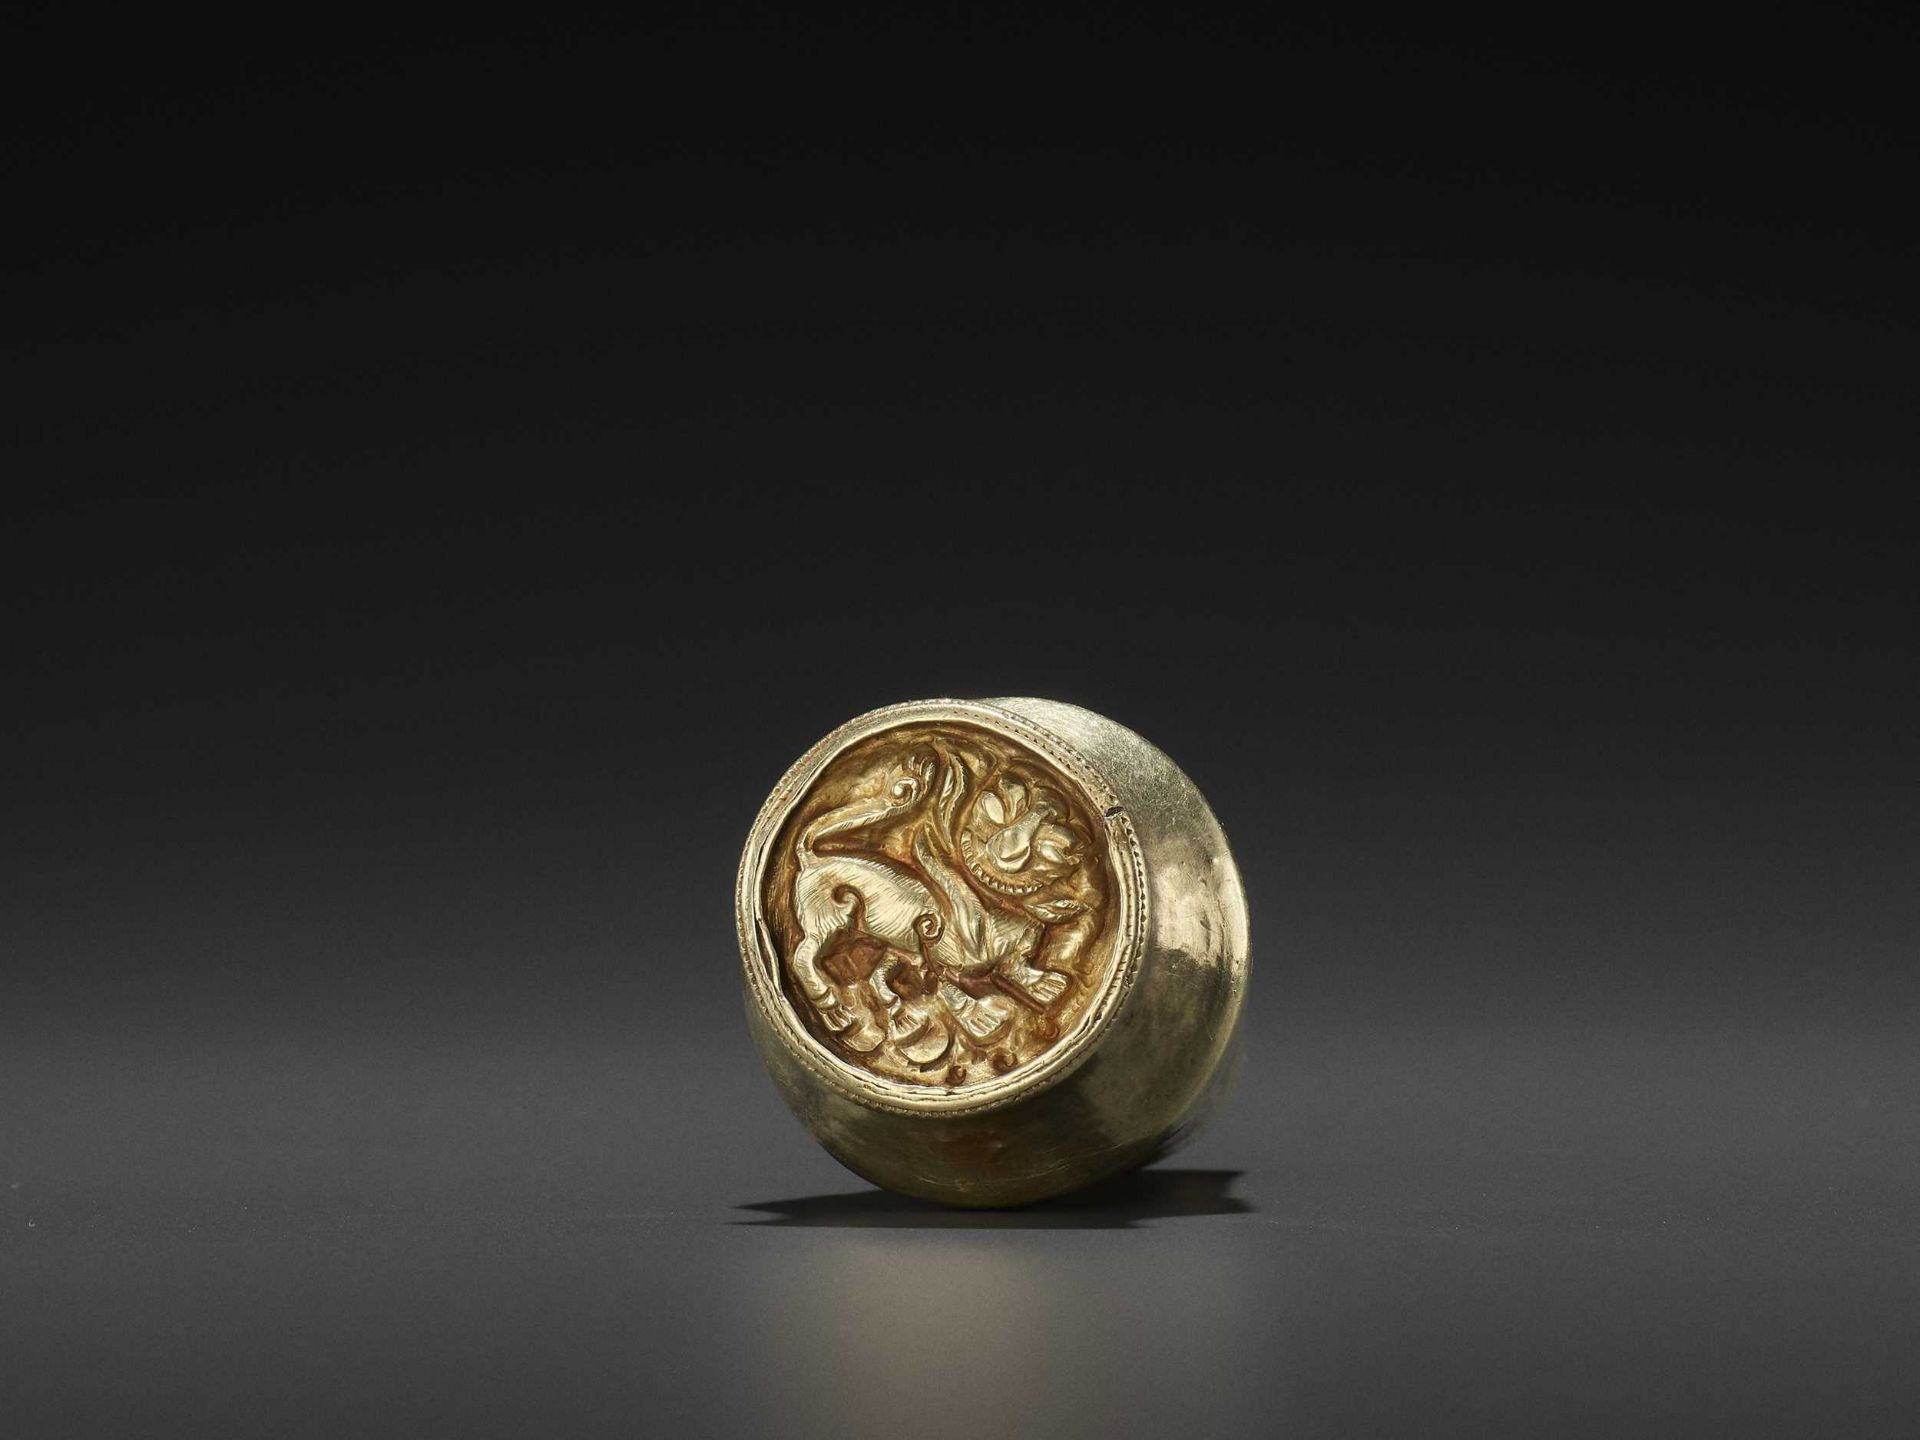 AN EXTREMELY RARE CHAM GOLD BETEL NUT CONTAINER WITH REPOUSSÉ TIGER MARK, EX-COLLECTION BAO DAI - Bild 2 aus 11